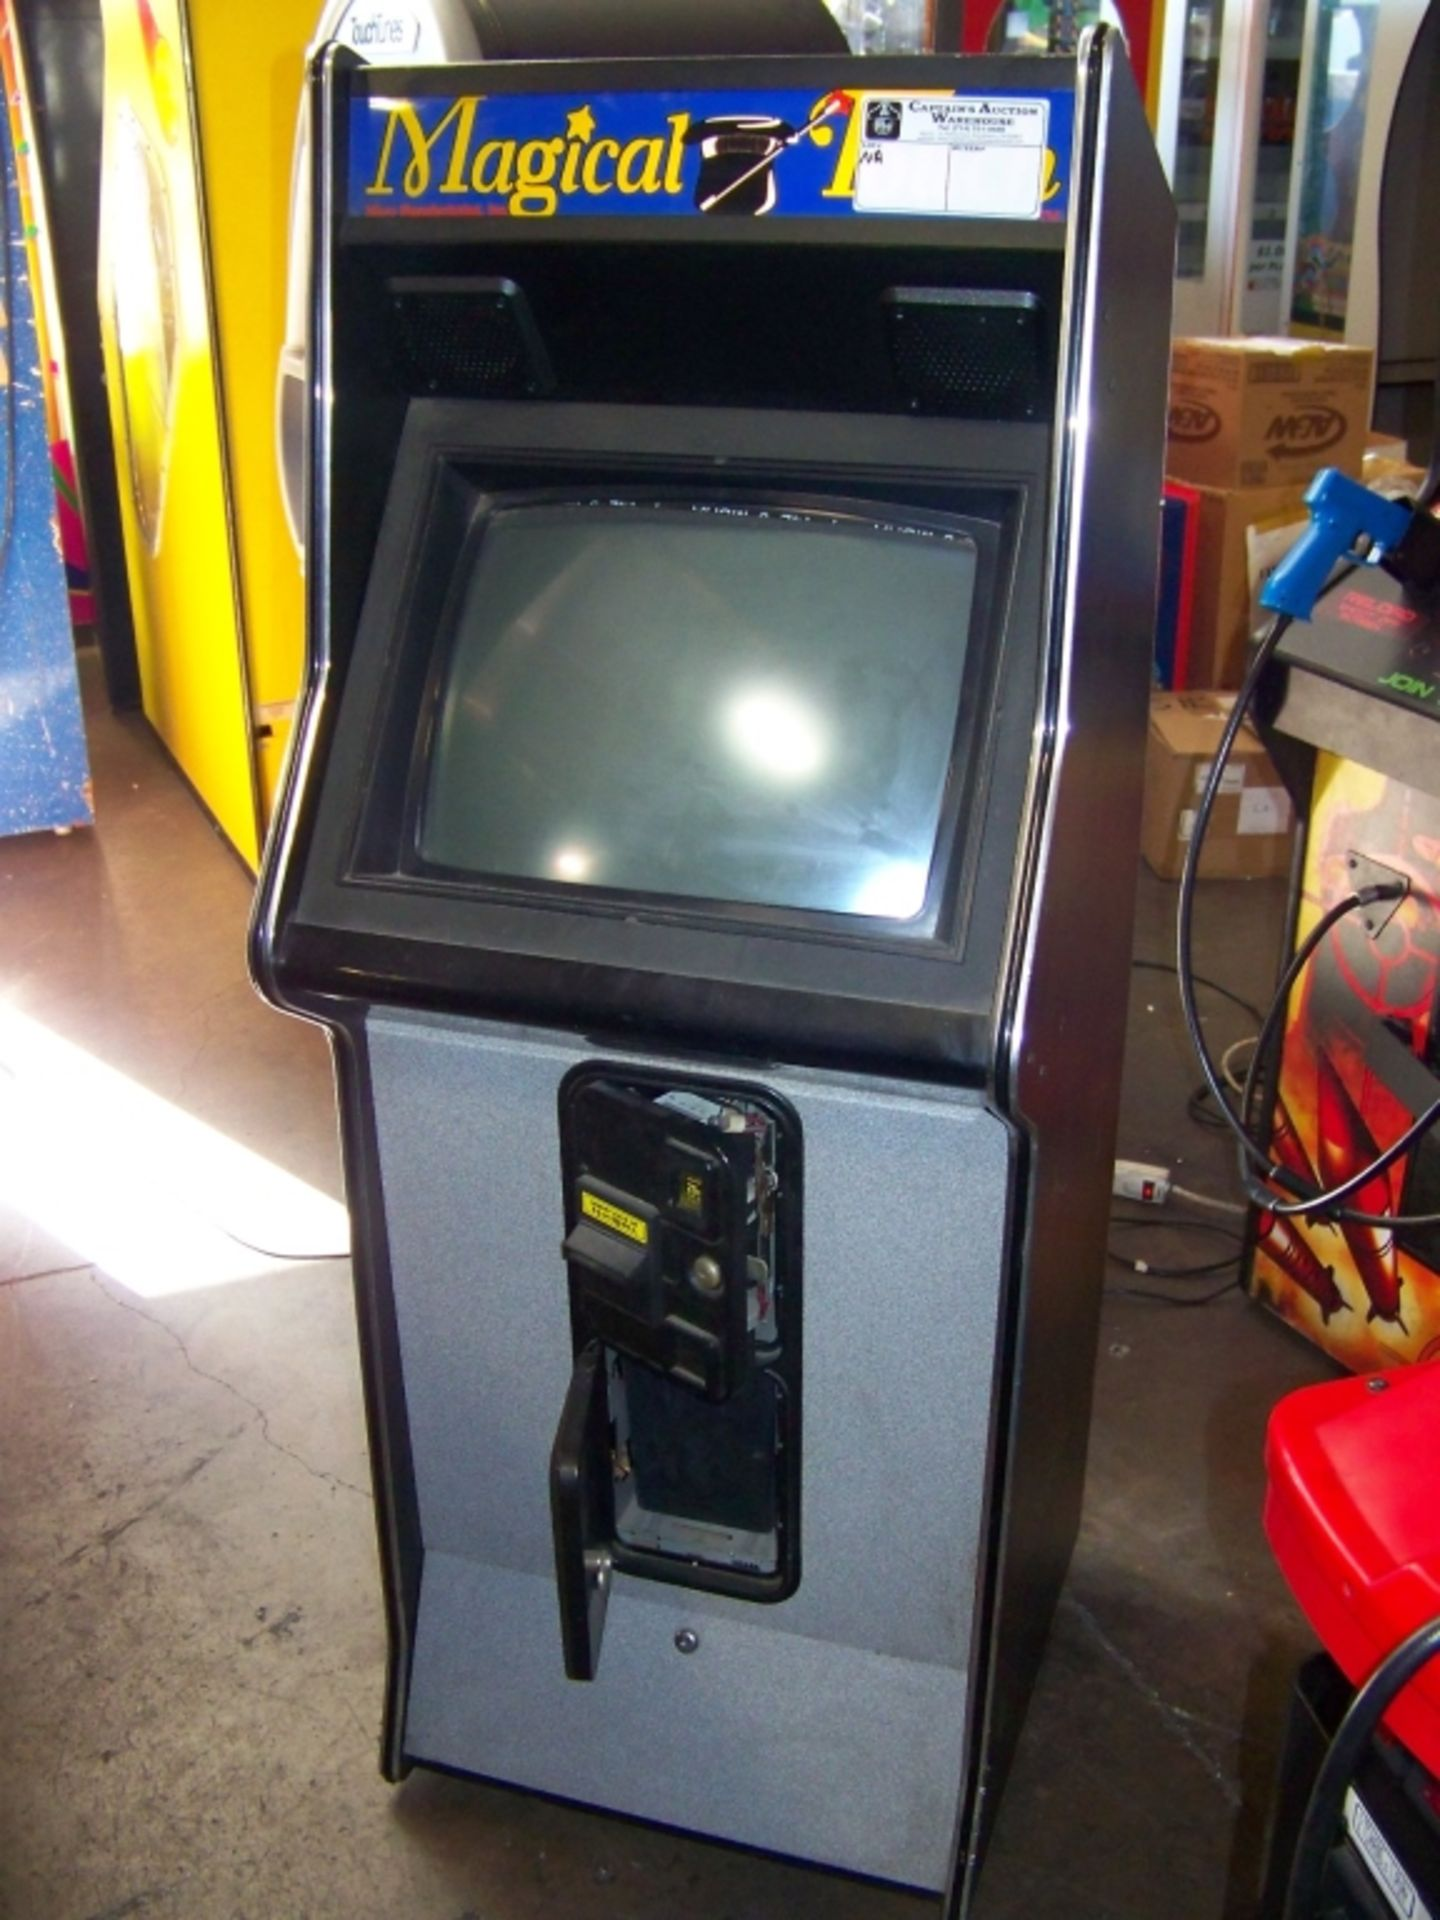 MAGIC TOUCH UPRIGHT TOUCHSCREEN ARCADE GAME